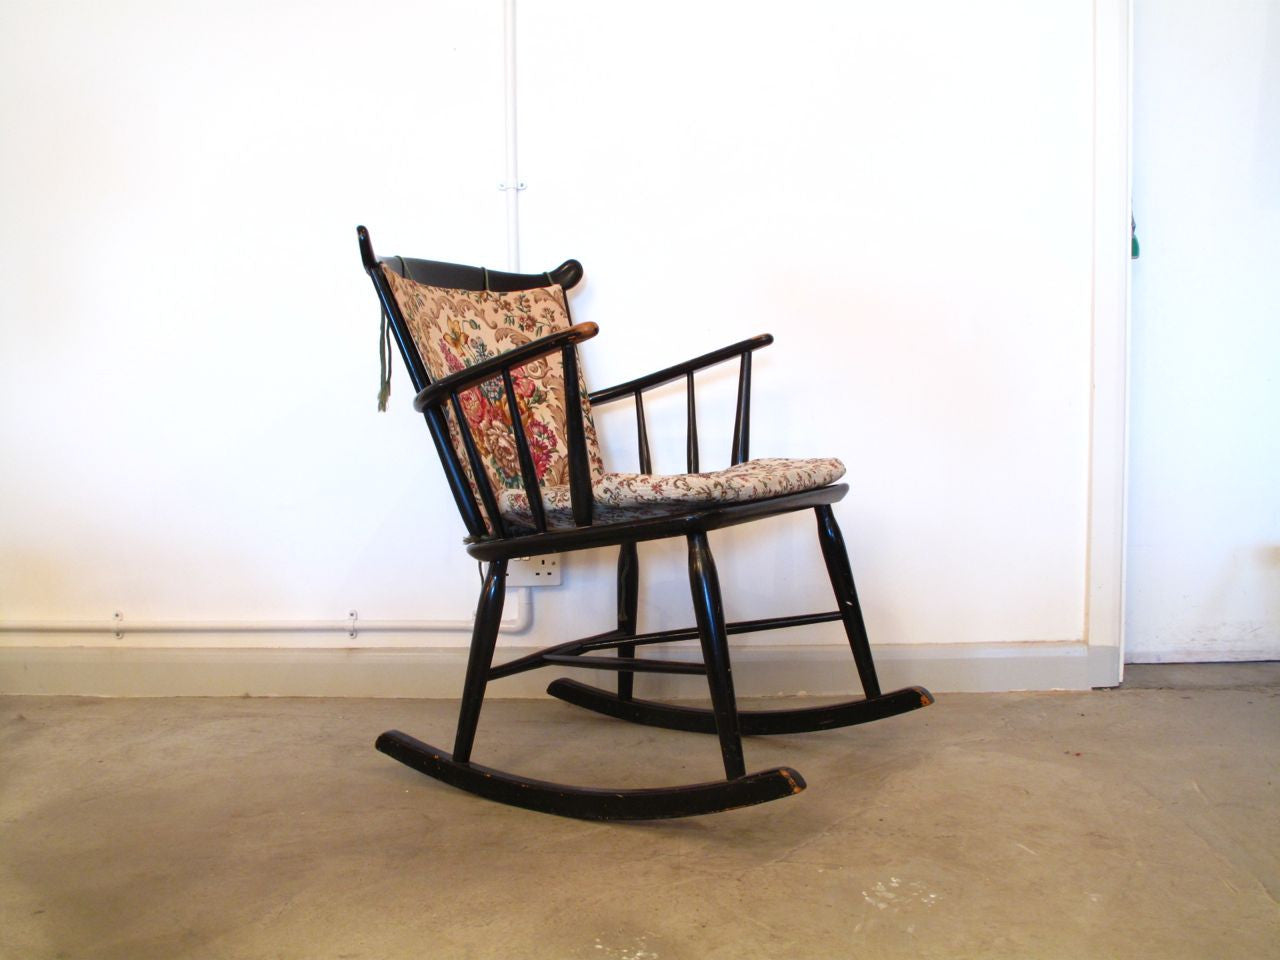 Chase & Sorensen Beech rocking chair no. 1